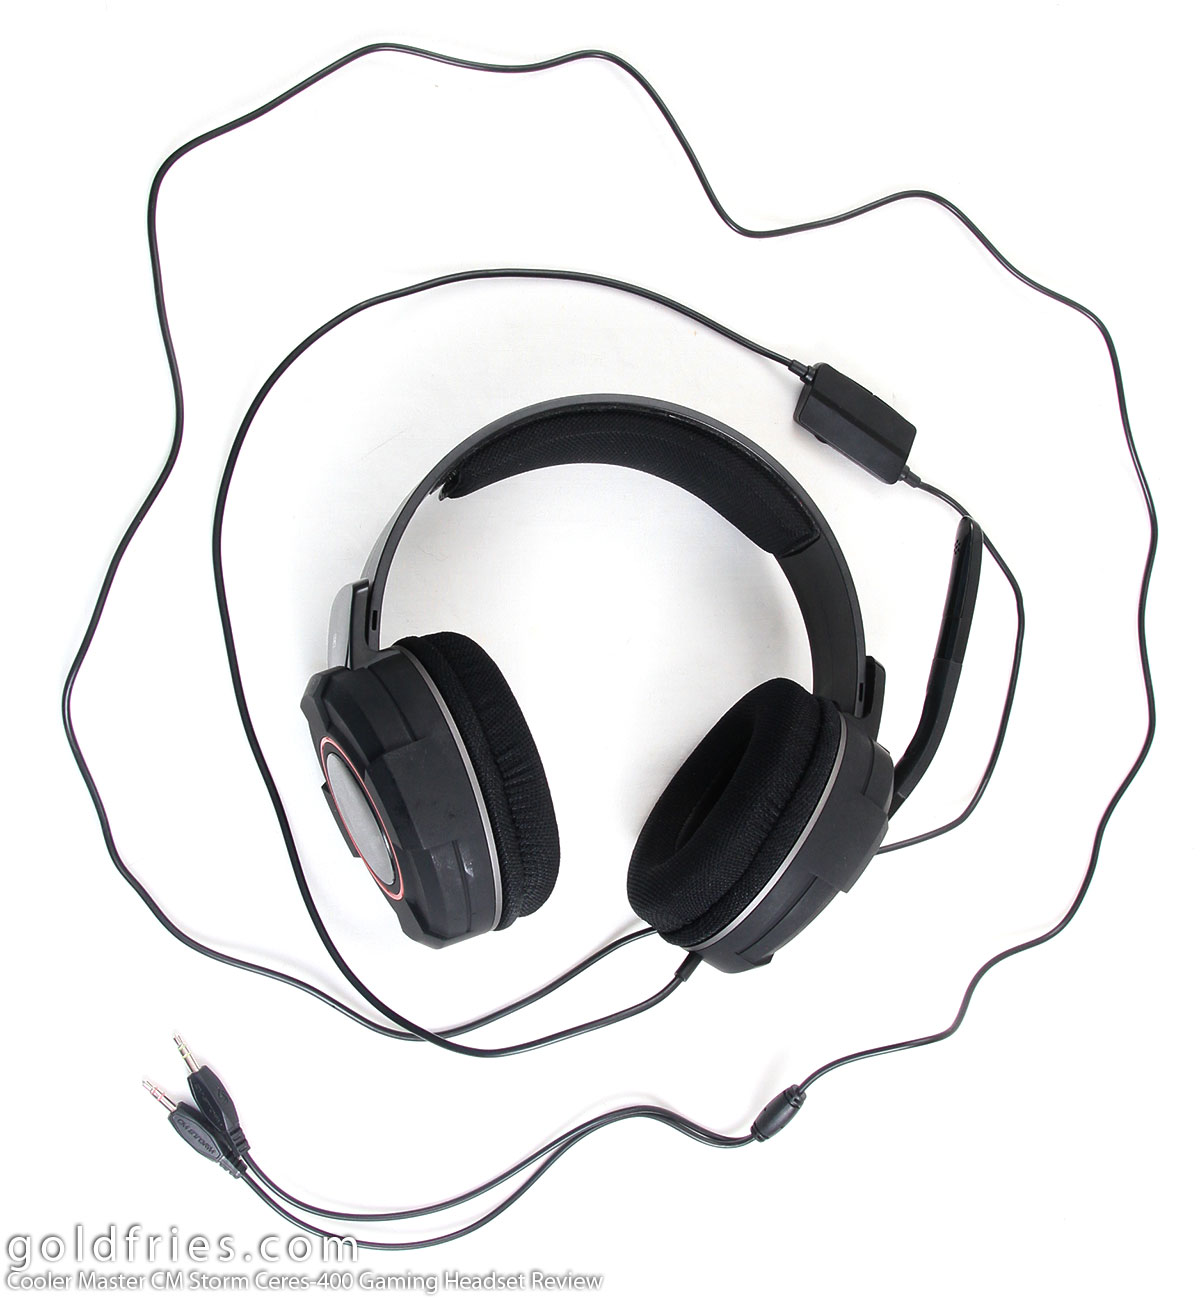 Cooler Master CM Storm Ceres-400 Gaming Headset Review 6